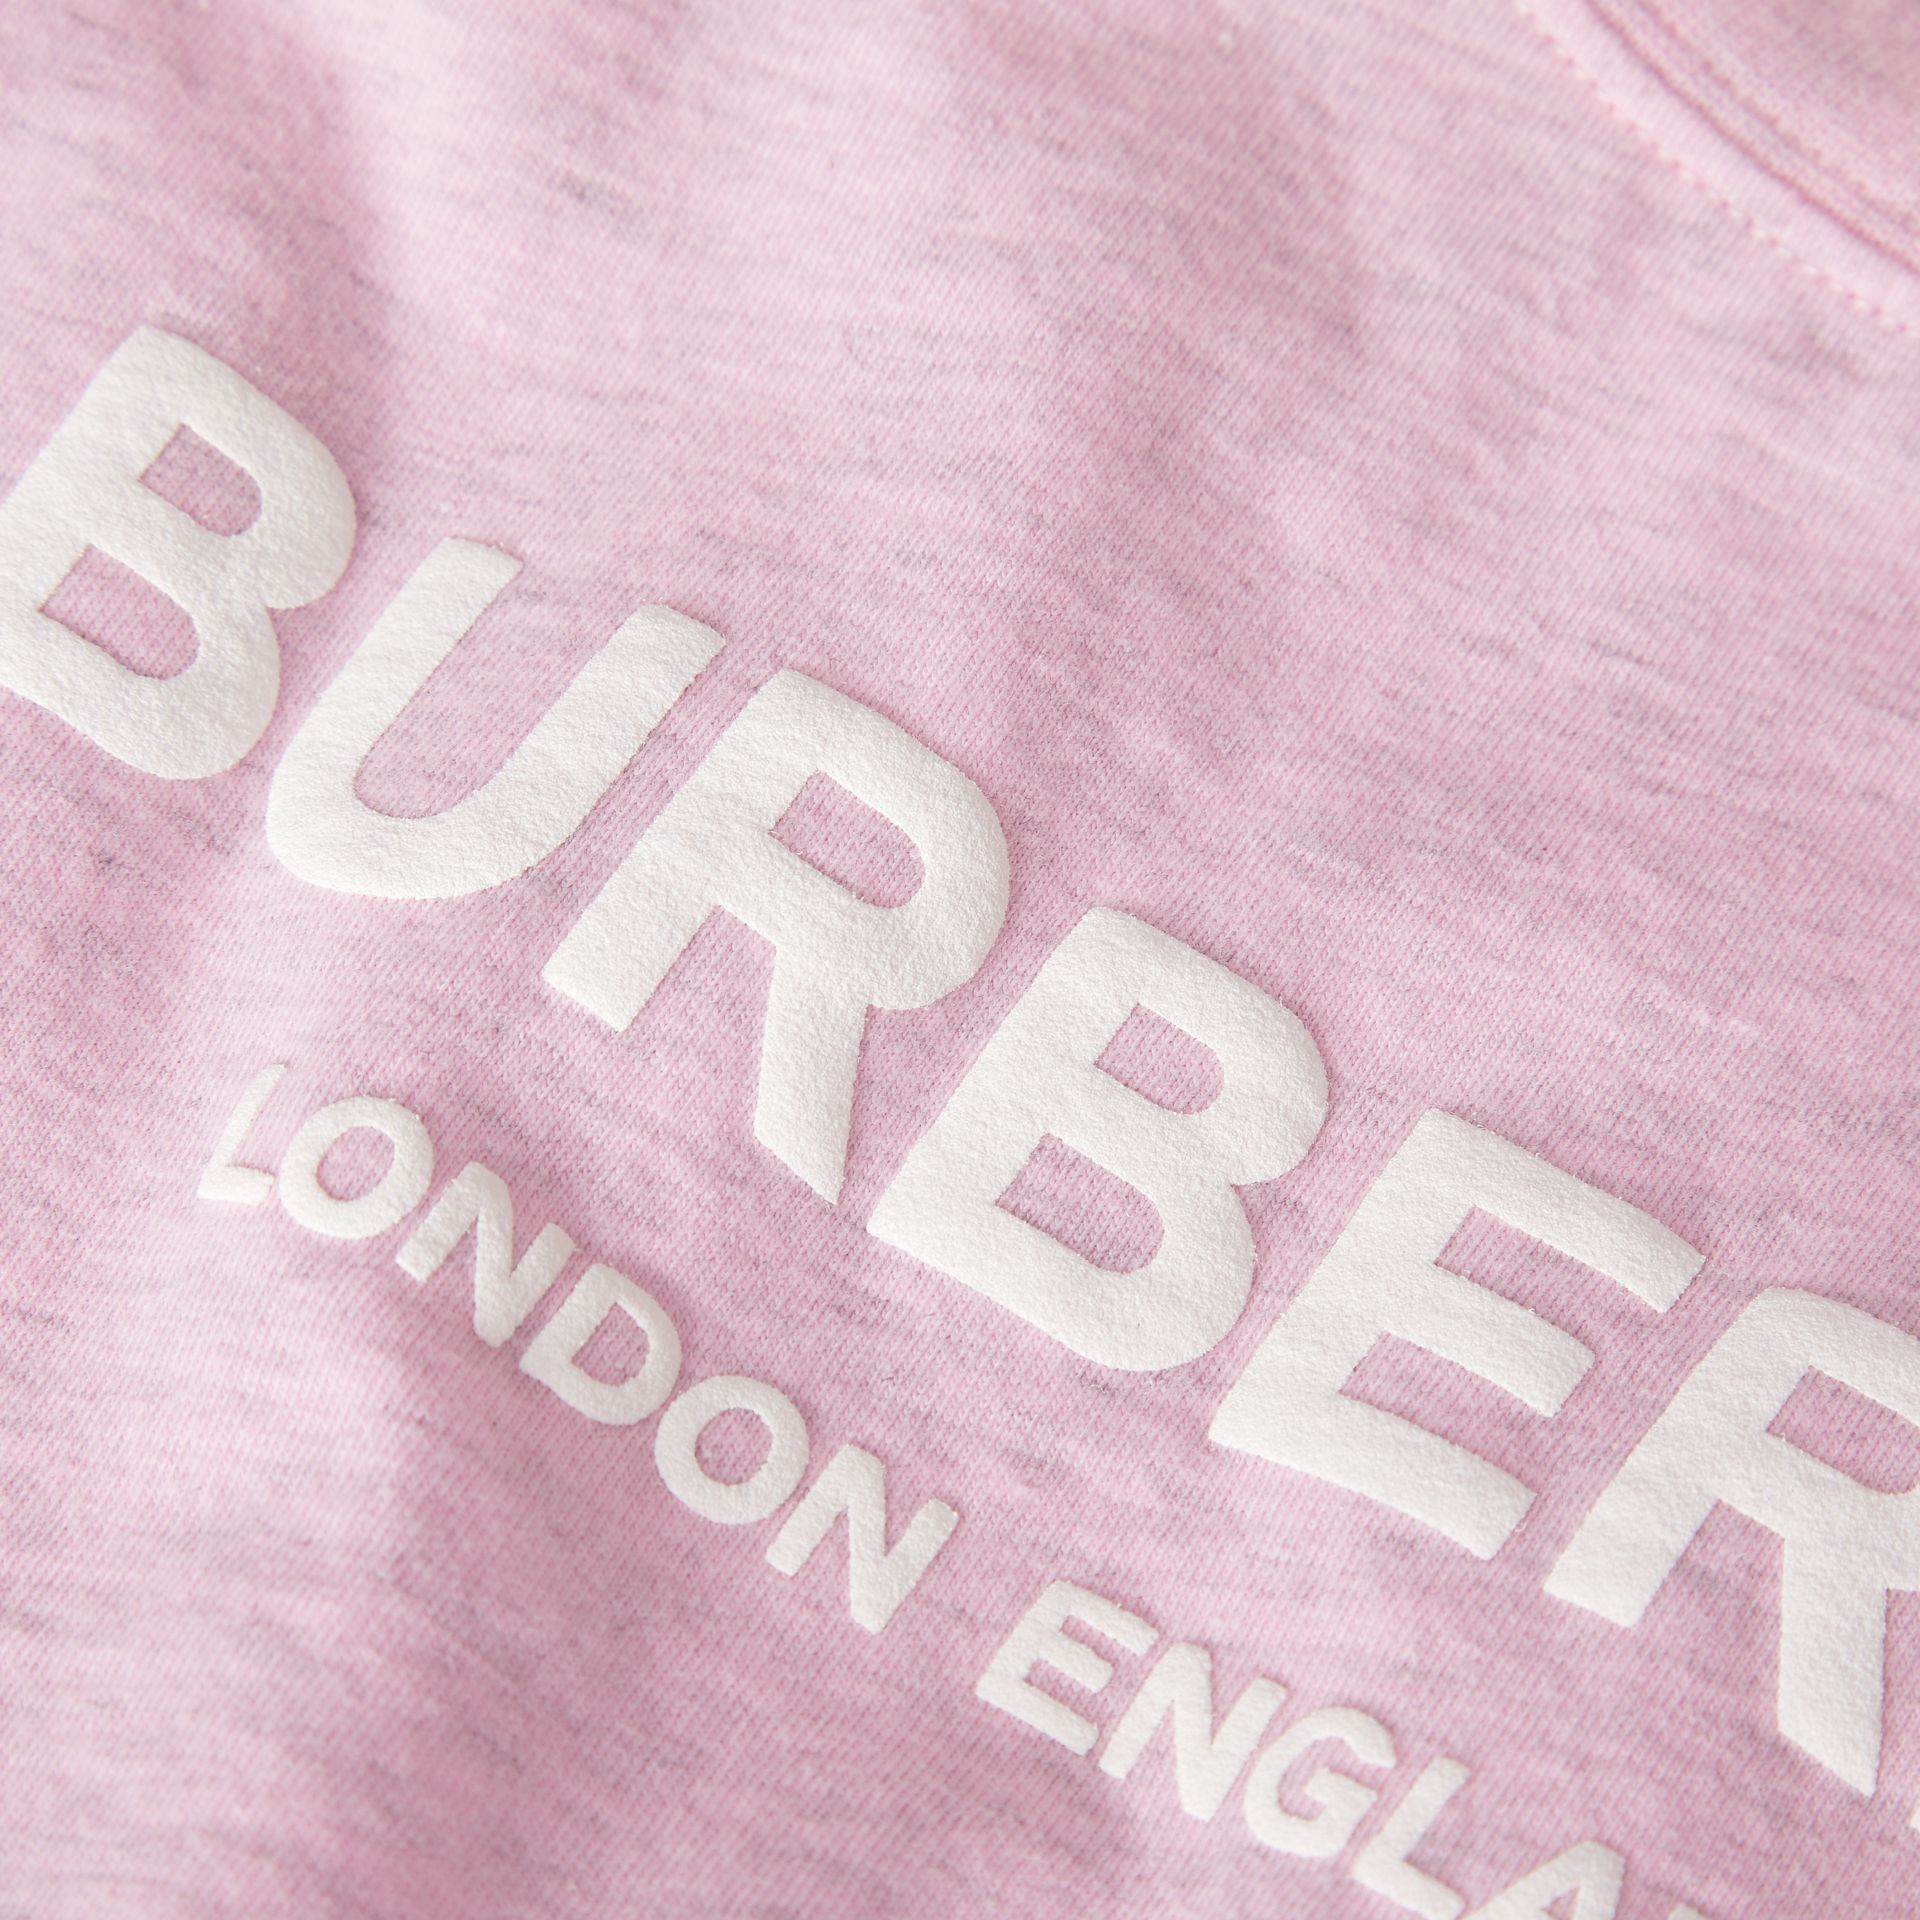 Logo Print Cotton T-shirt in Pale Neon Pink - Children | Burberry - gallery image 1